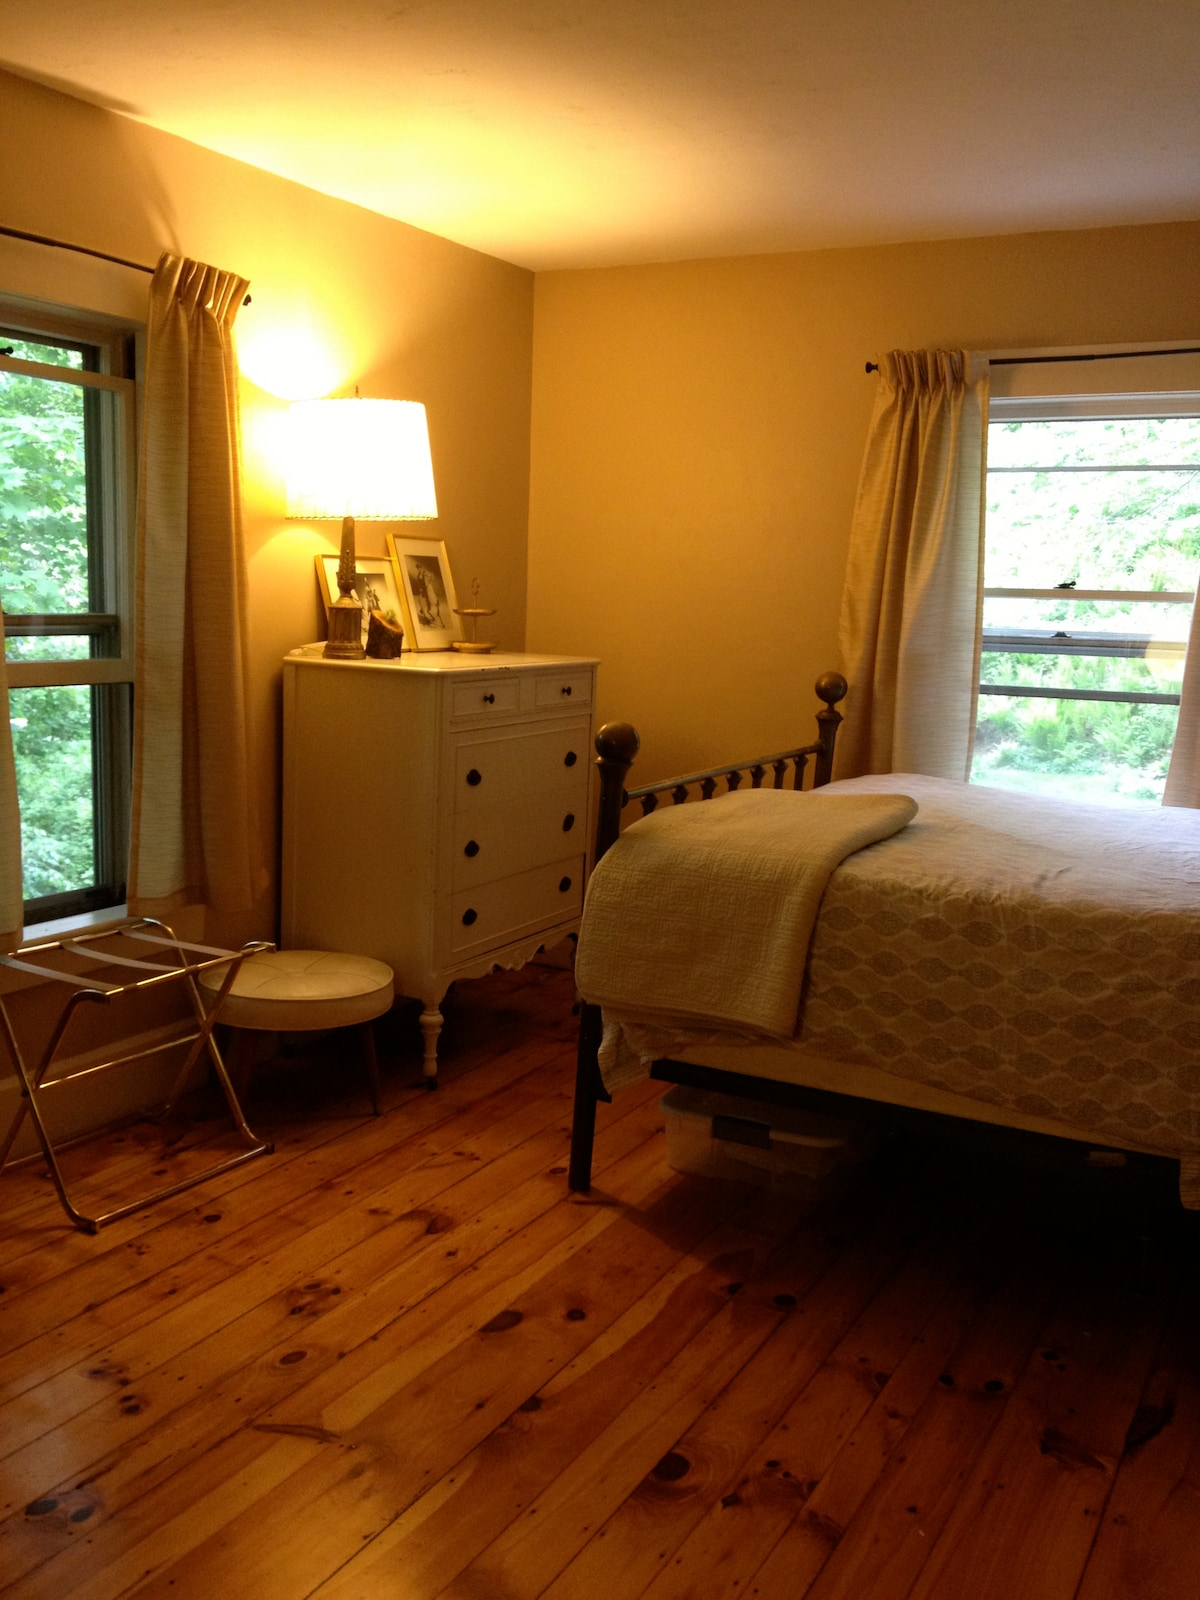 The master bedroom, with a queen size bed. It's nice and bright in the morning.